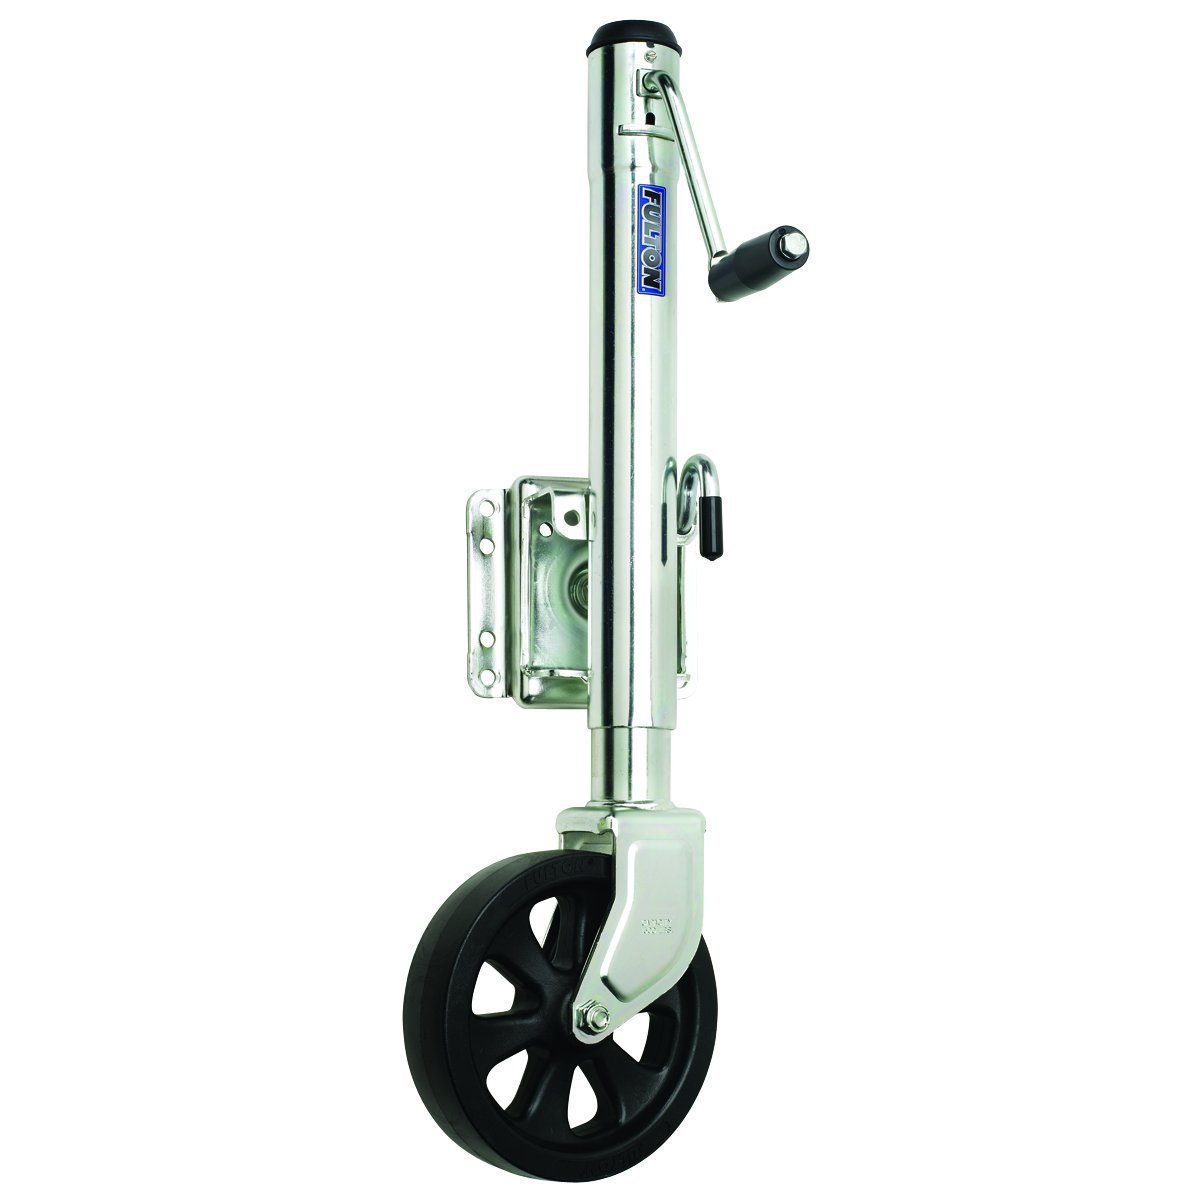 Fulton XP15 0101 Steel Swing-Away Bolt-On Jack with 10'' Travel and 8'' Poly Wheel - 1500 lb. Weight Capacity by Fulton